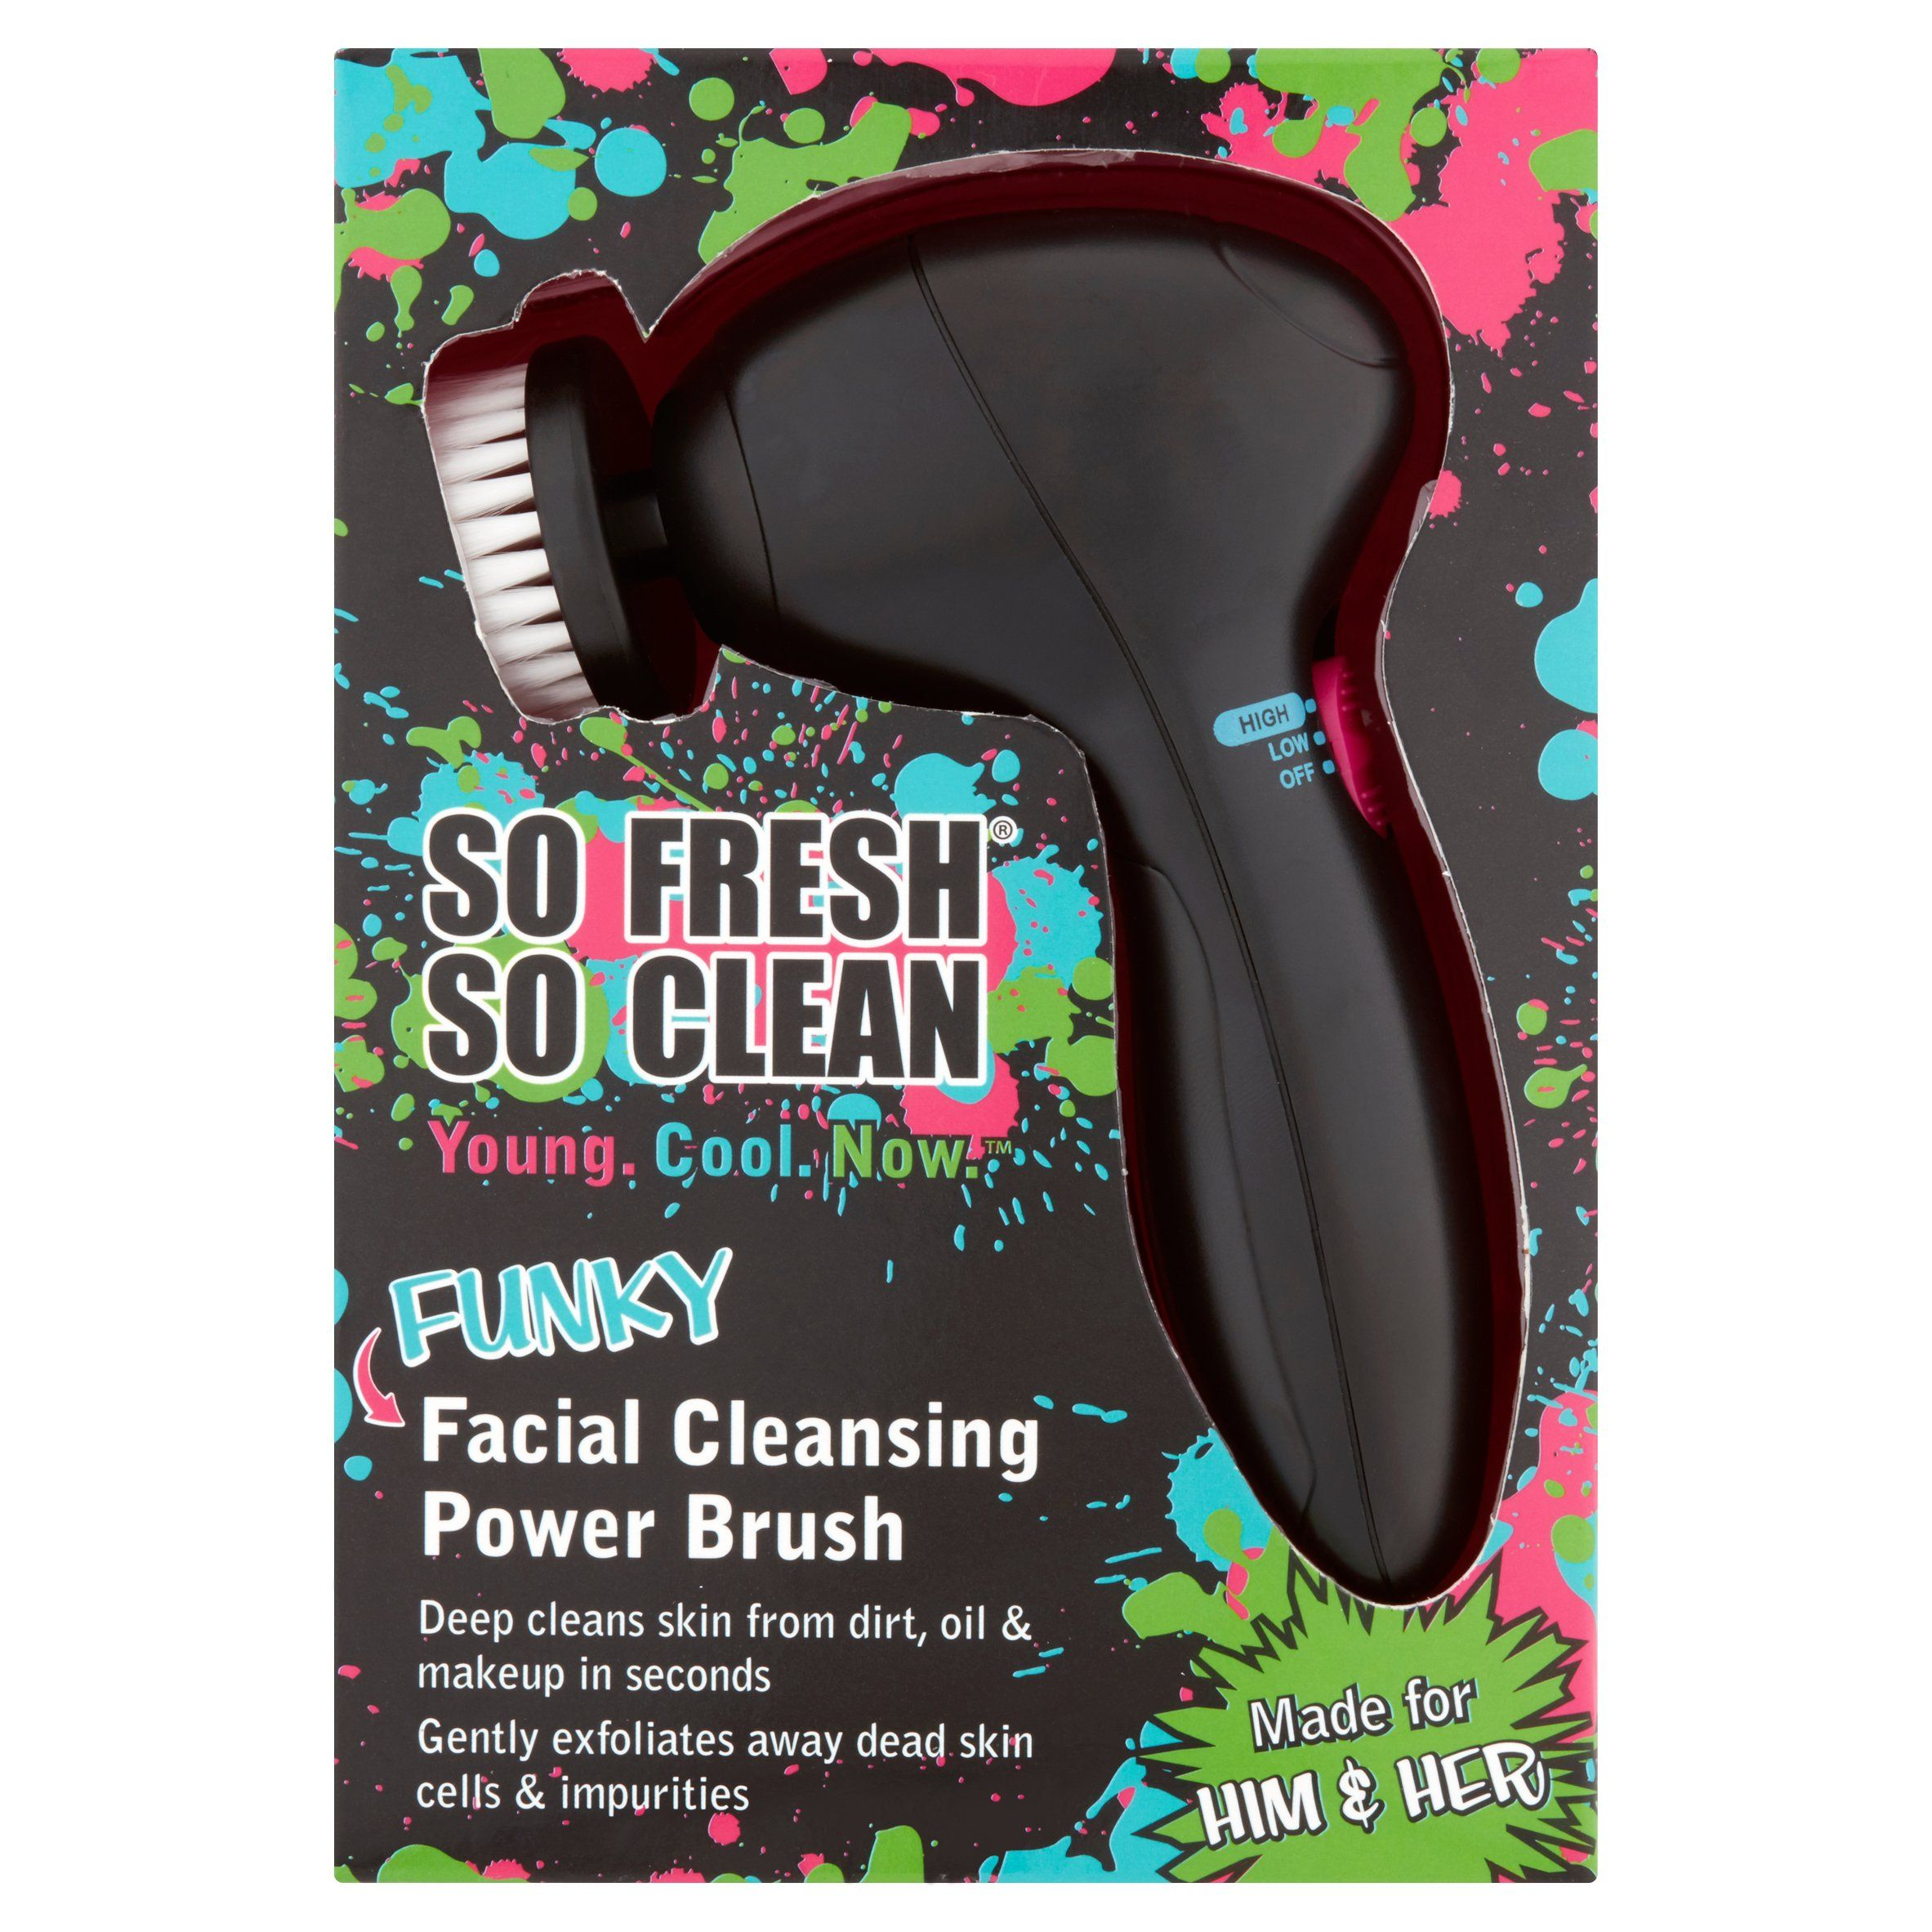 Beauty Facial cleansing, Skin care tools, Skin care